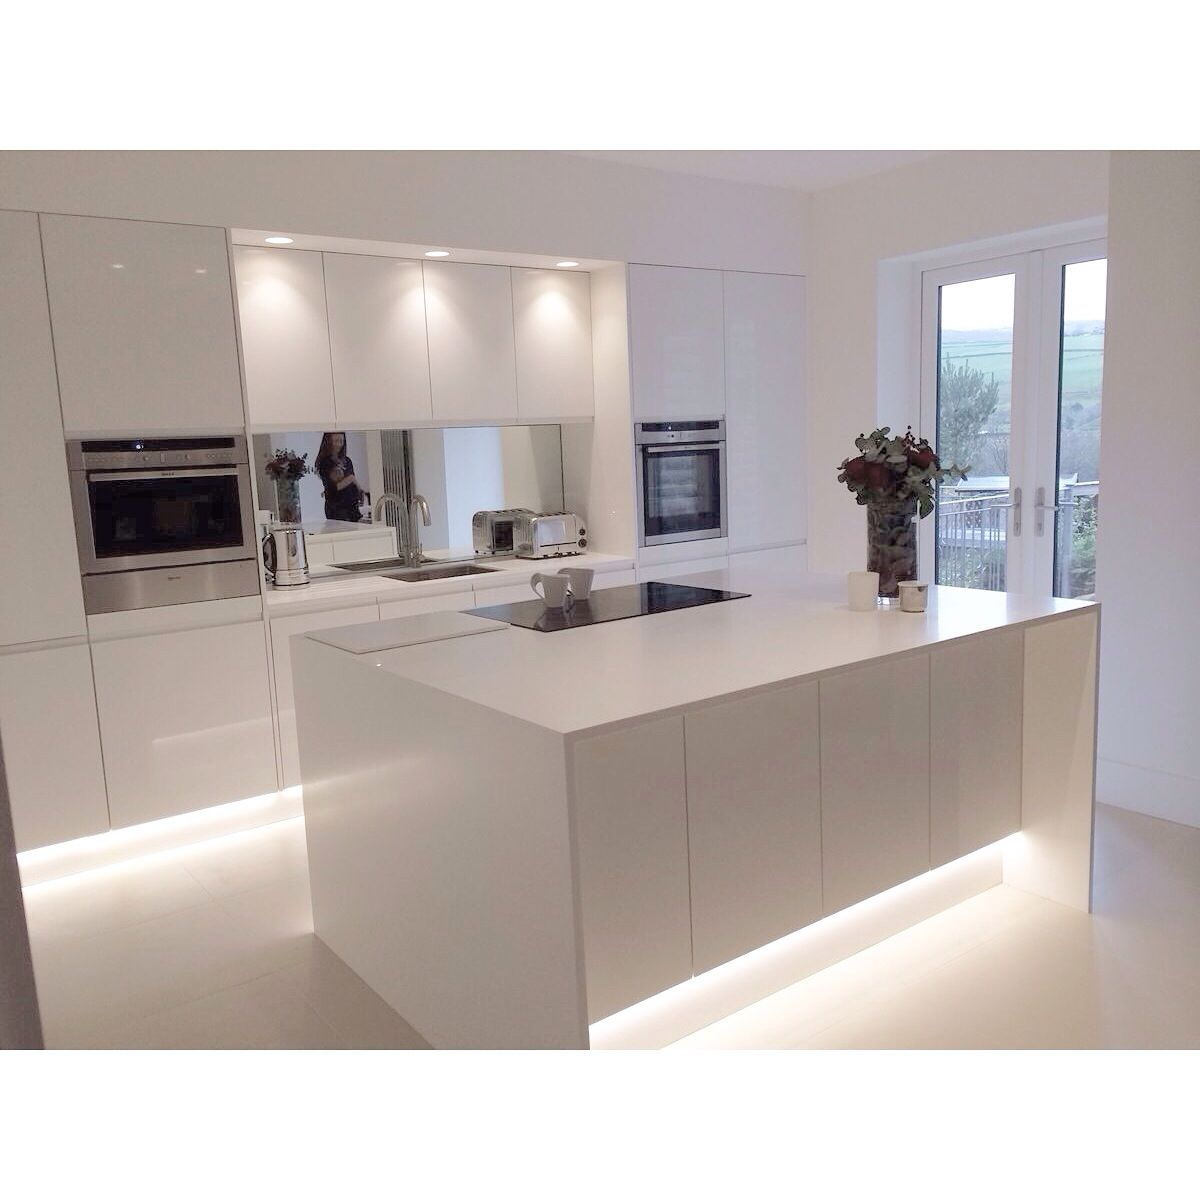 modern white gloss integrated handle kitchen with 18mm corian wrap kitchen design and inspiration modern white gloss integrated handle kitchen with corian wrap and worktops design by hollyanna